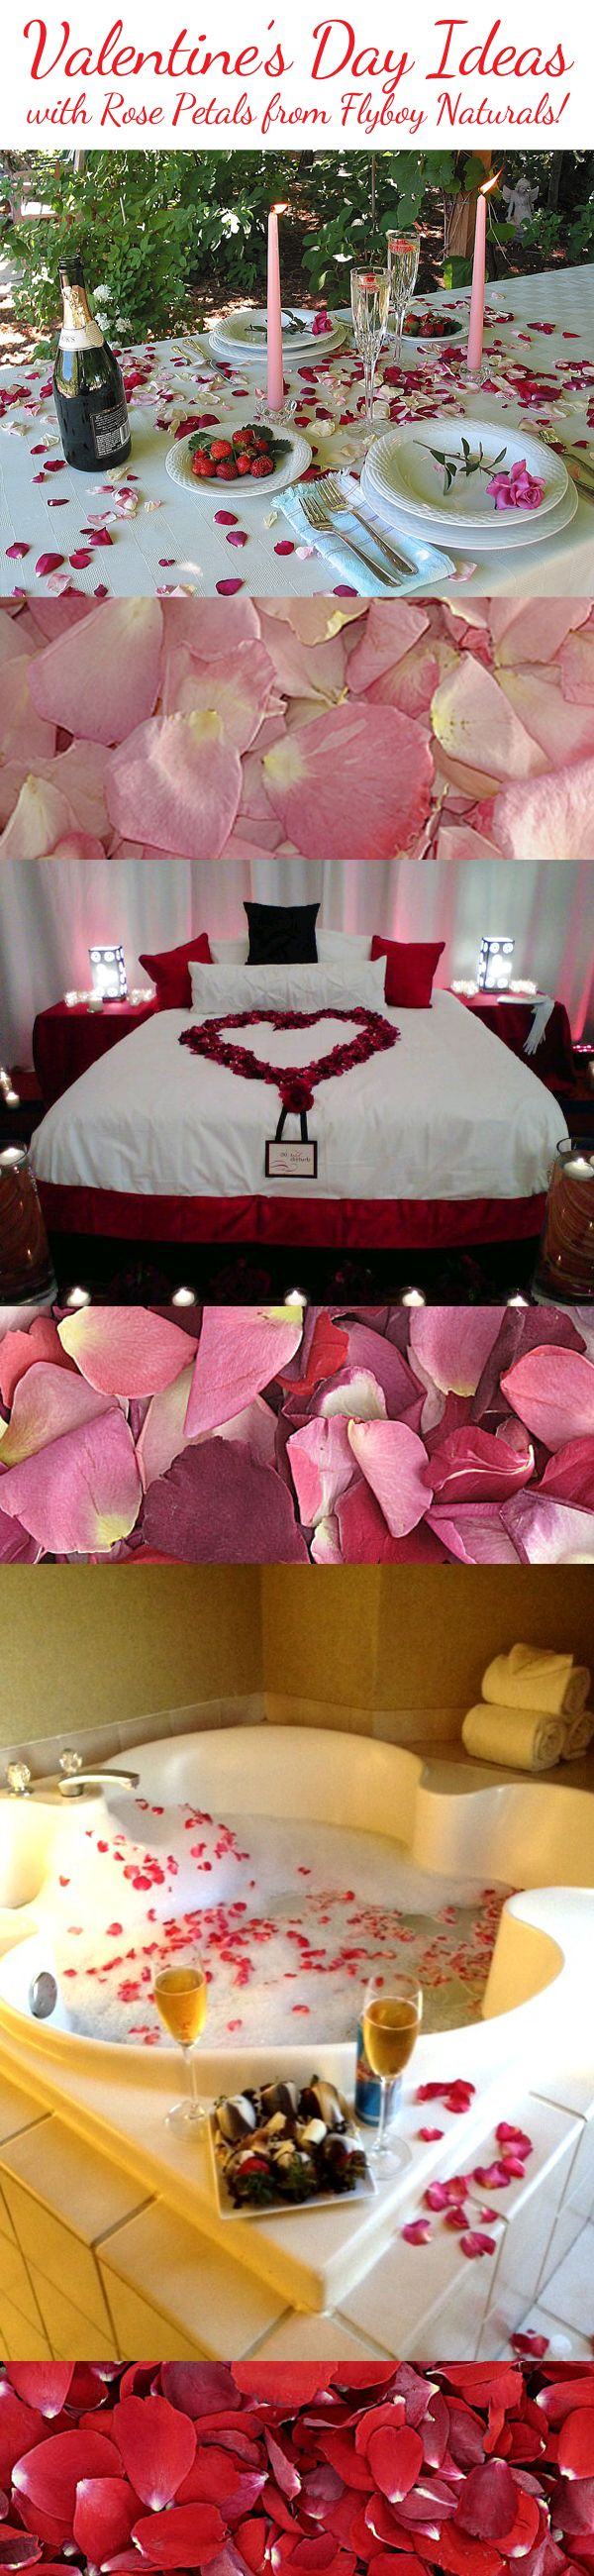 Romantic bedroom rose petals - Romantic Ideas With Real Freeze Dried Rose Petals From Flyboy Naturals All Natural Eco Friendly Over 100 Colors To Ch